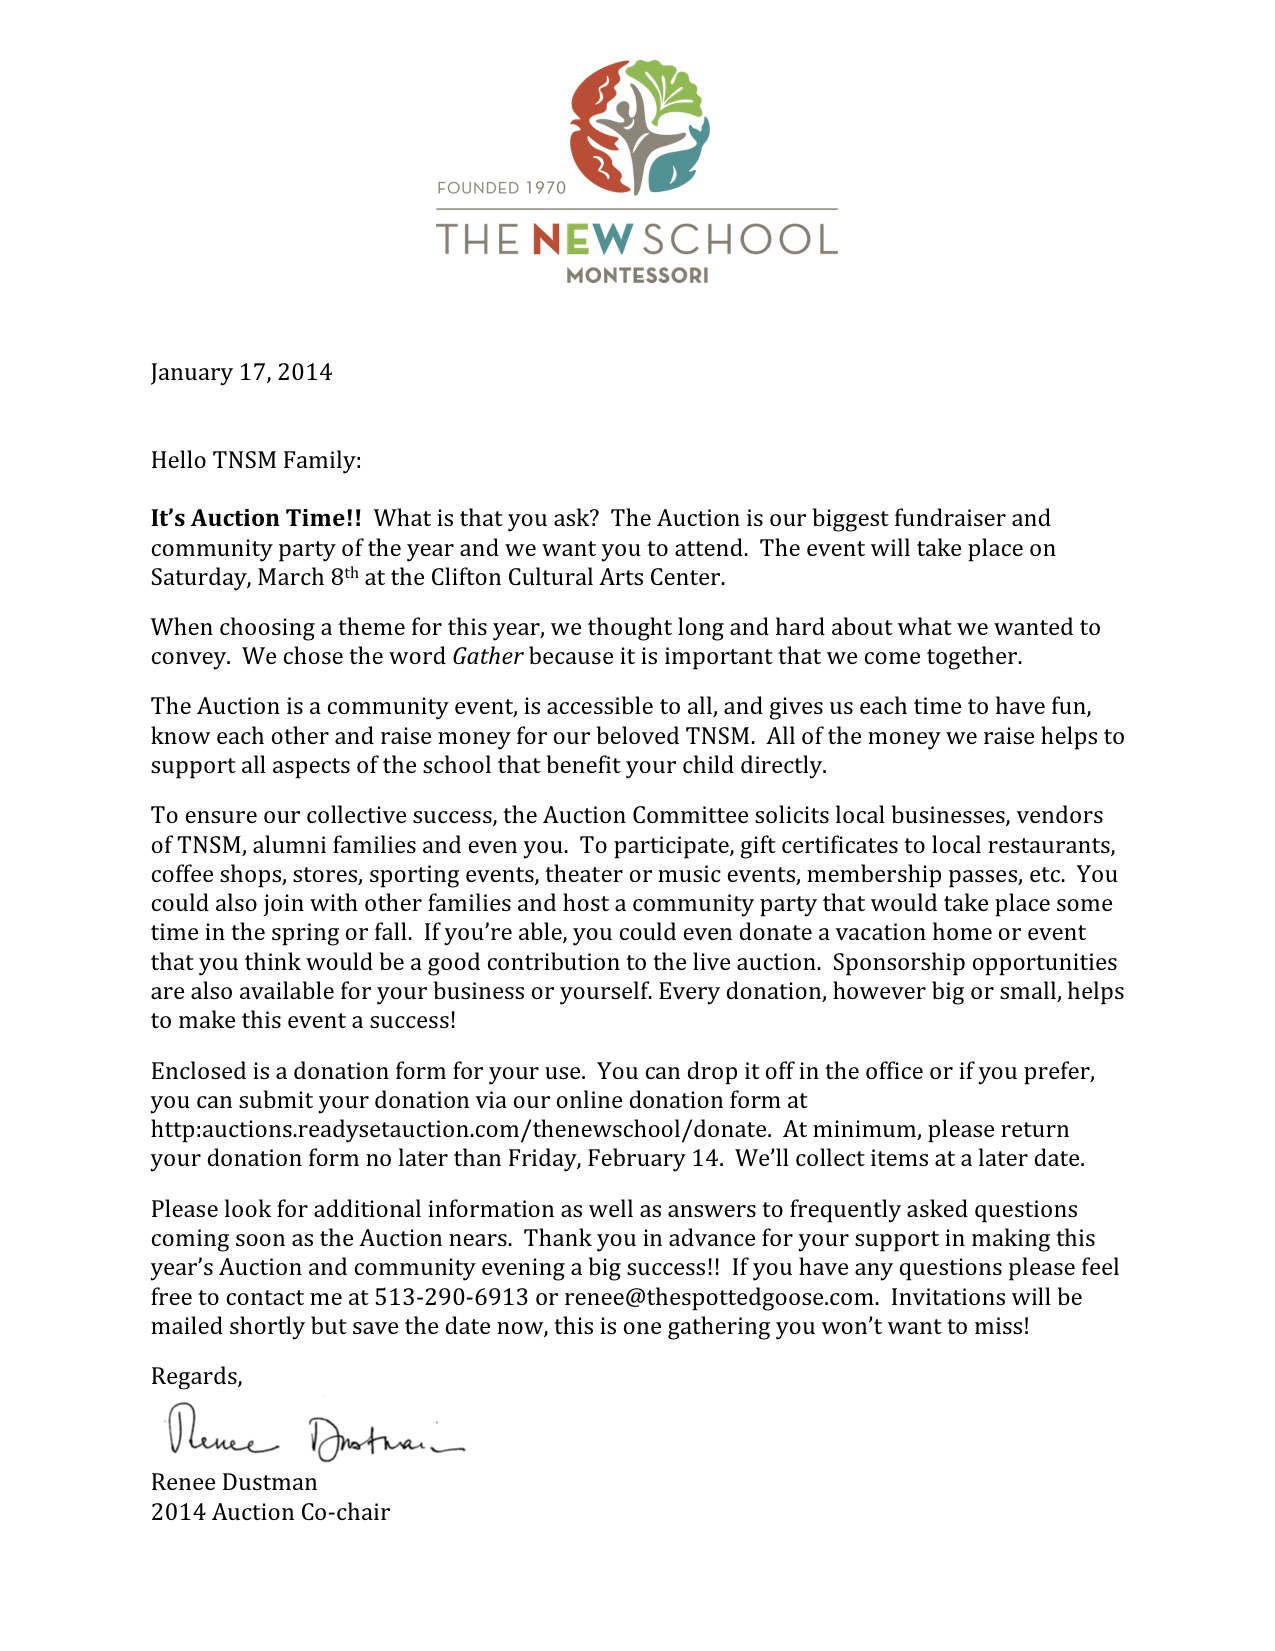 donation letter template for schools - auction letter and donation form the new school montessori